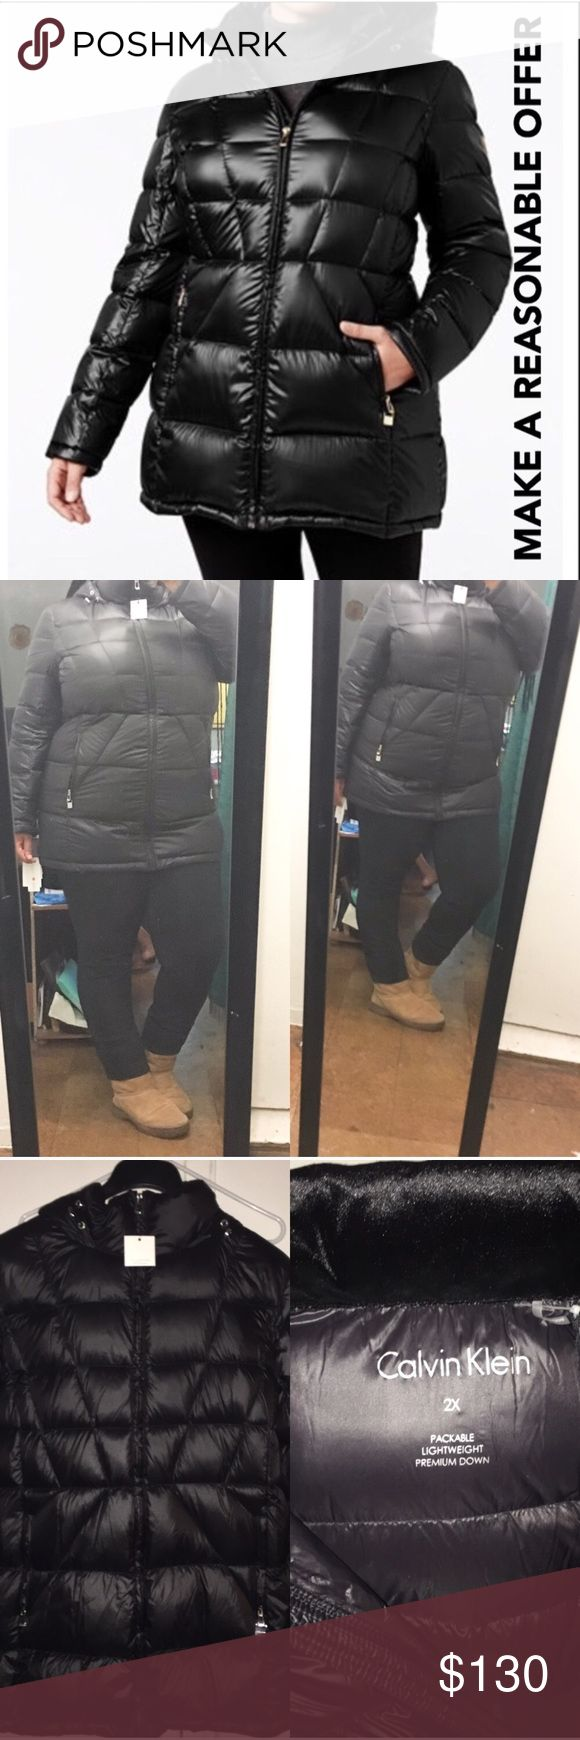 """Calvin Allen Plus Size Down Coat ✅ACCEPTING REASONABLE OFFERSNO TRADES. Retails $240. STATS: """"33 Long, Polyester & spandex body, velvet hood lining. Lightweight as well as washable. This coat is ah may zin. True to size and super stylish. FOR REFERENCE : I'm 5'4 & a 42H Bra size. Questions welcomed Calvin Klein Jackets & Coats Puffers"""